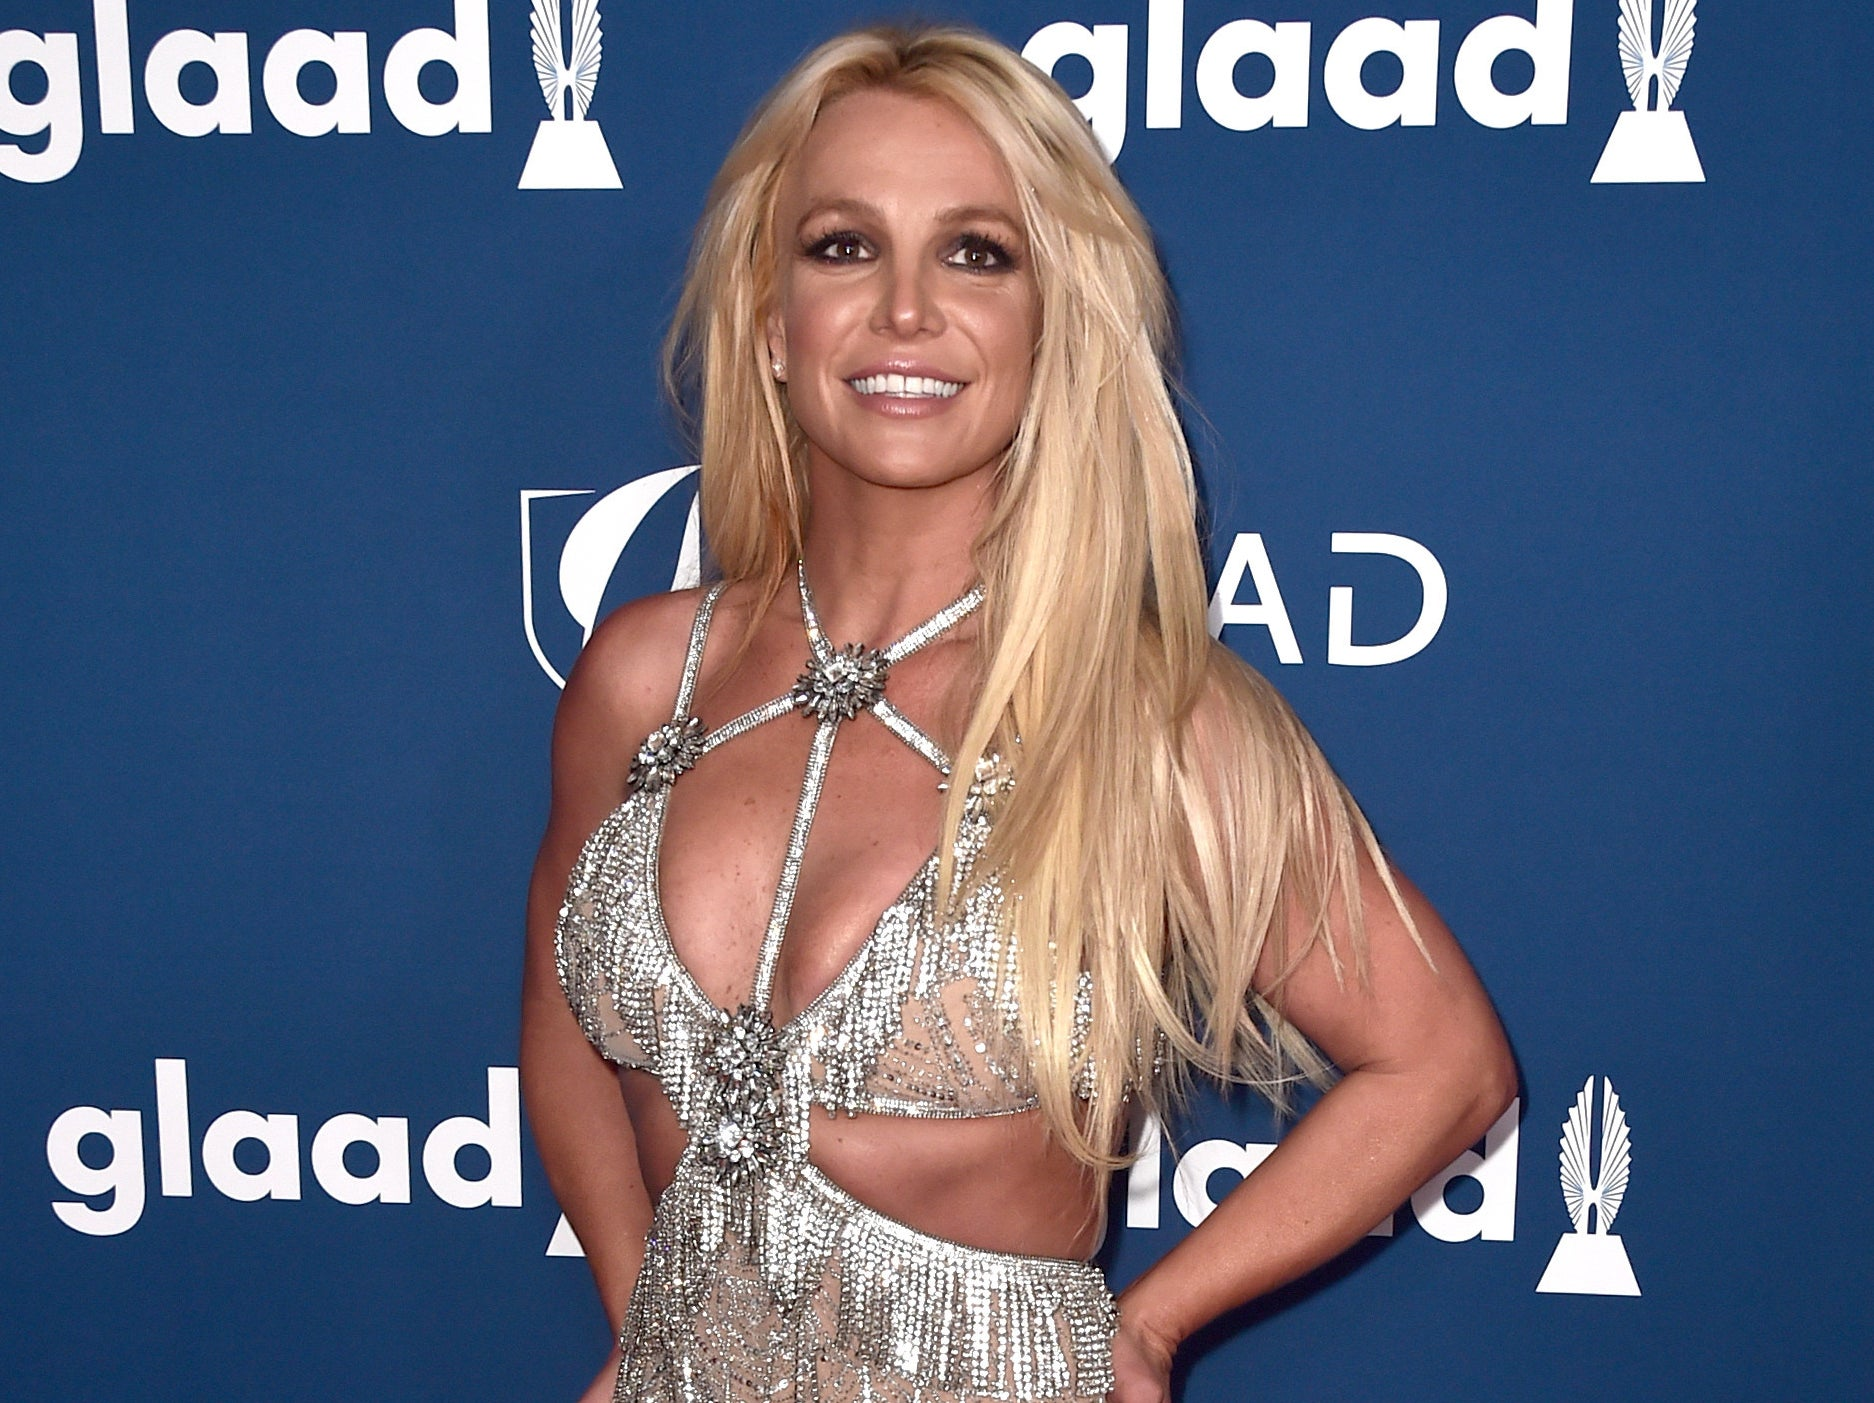 Britney smiles while wearing a cutout dress with diamond fringe